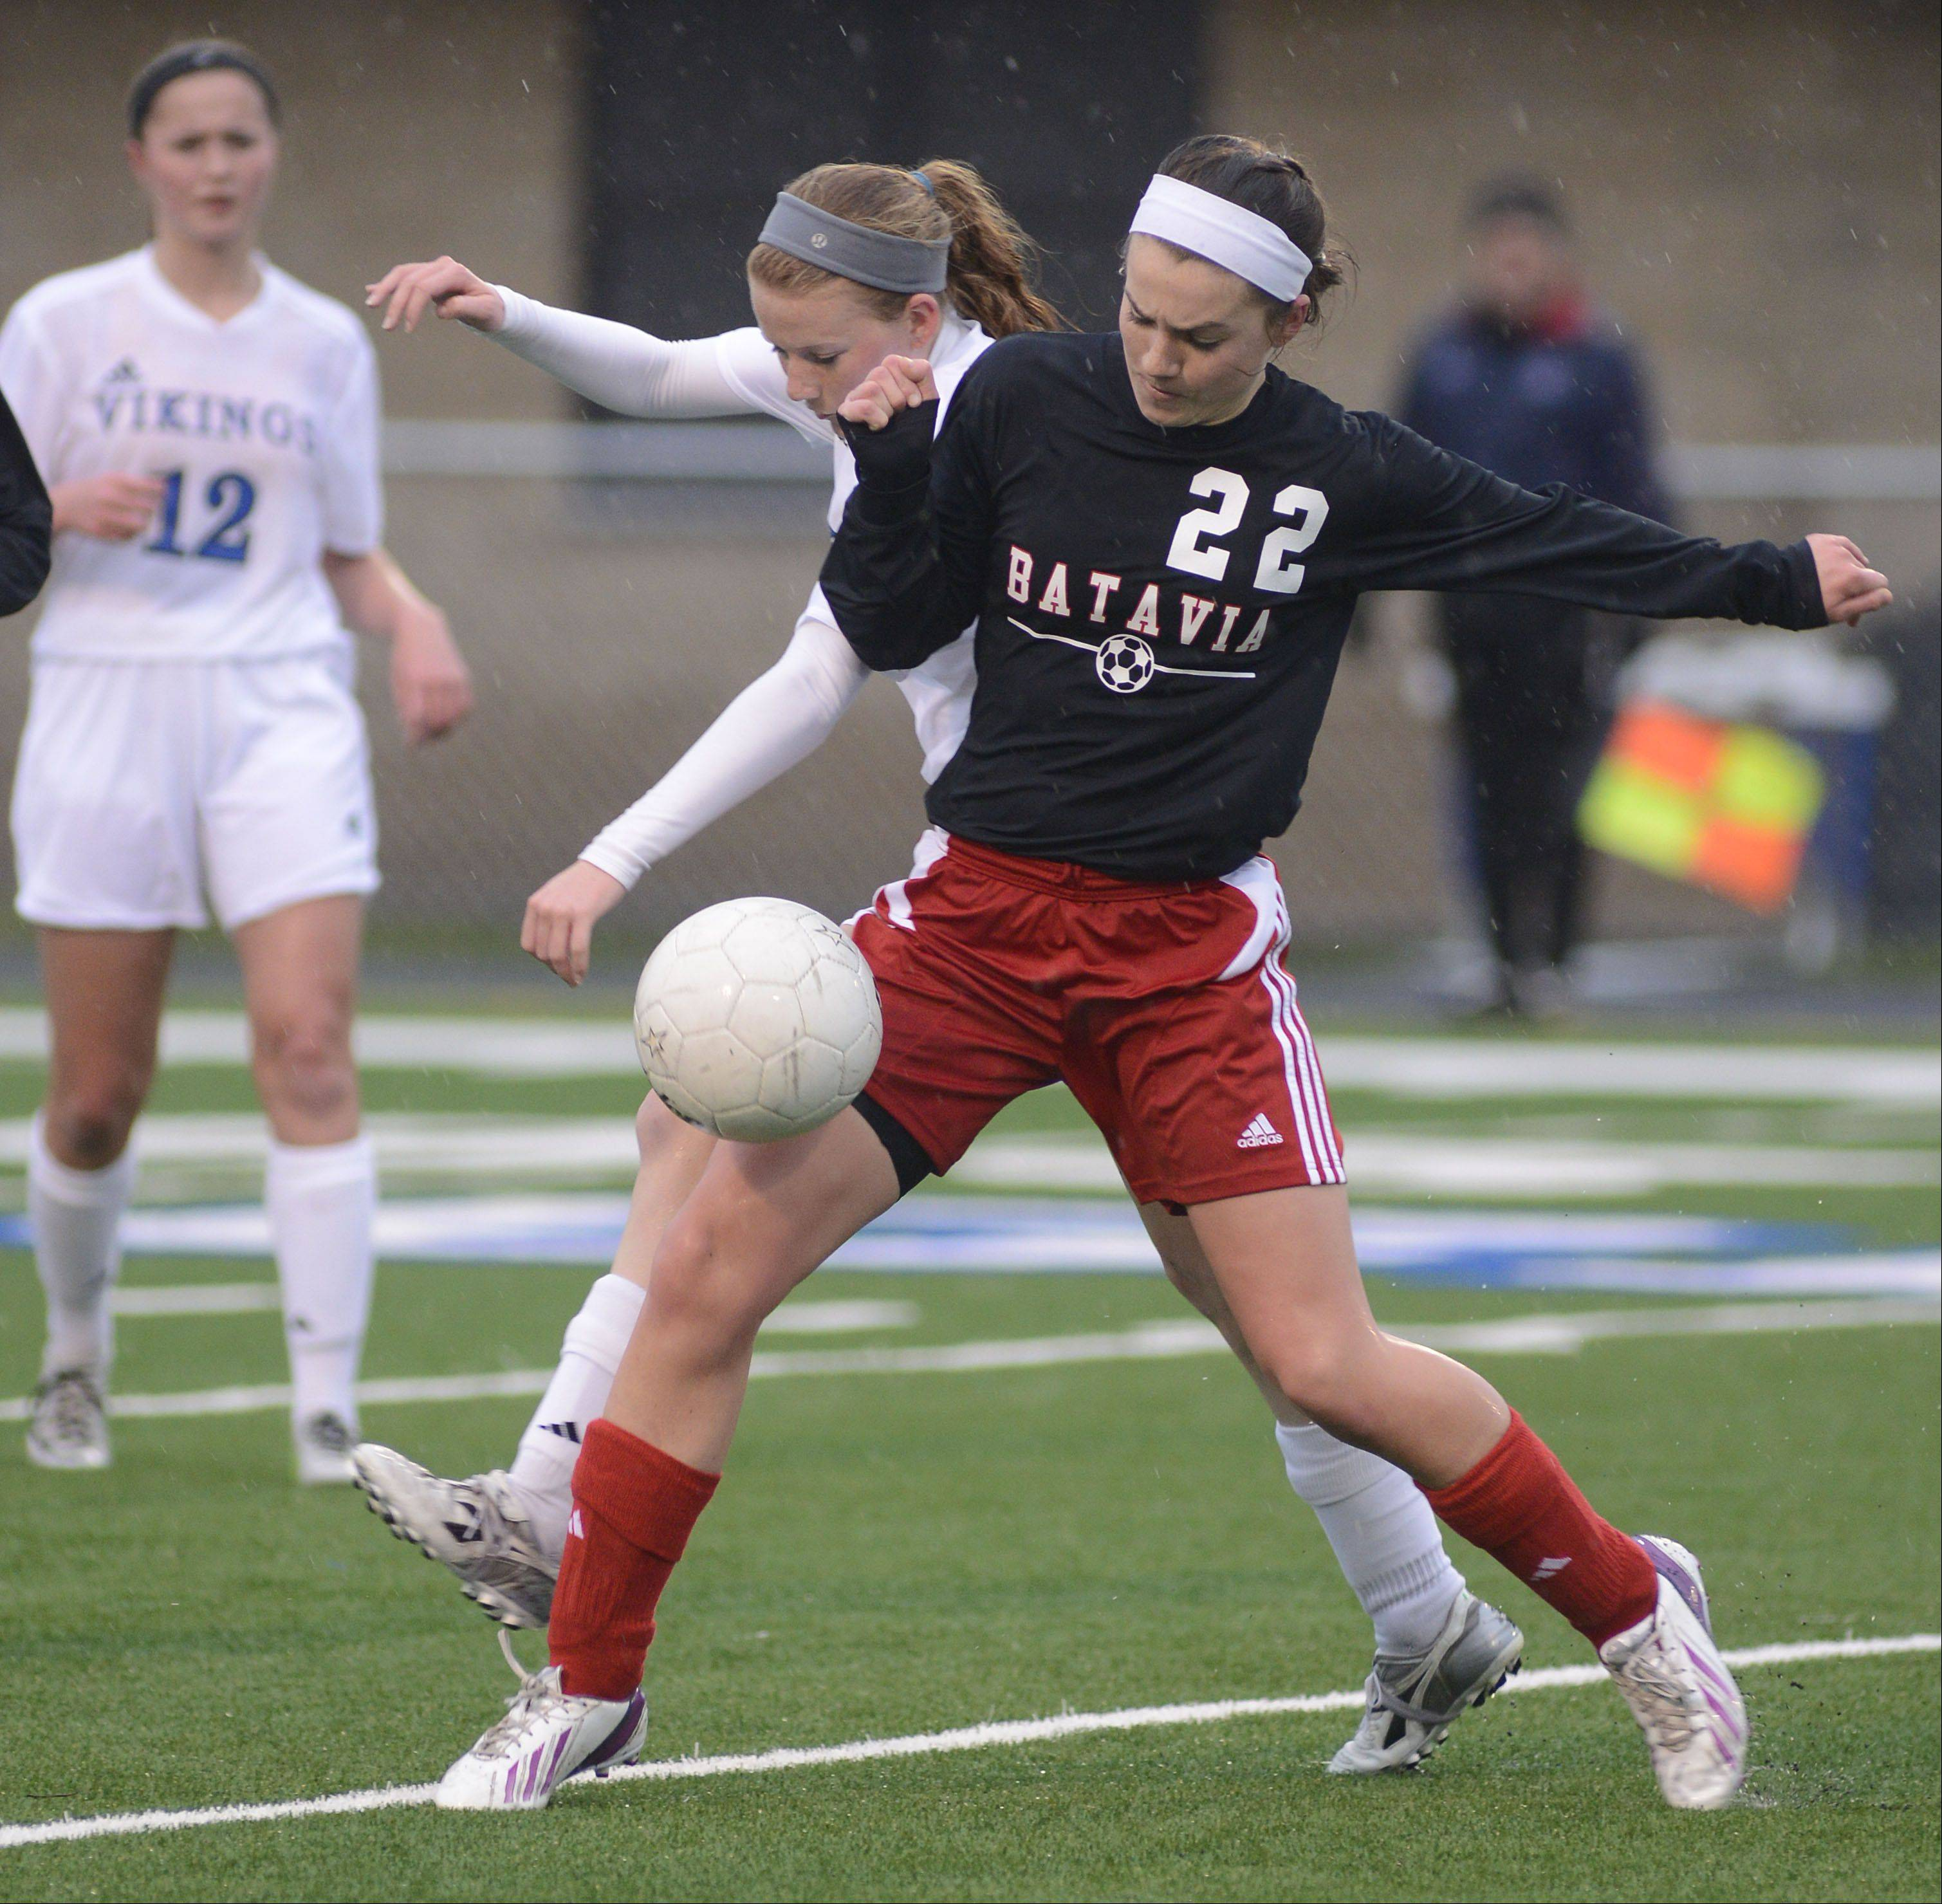 Batavia's Grace Andrews and Geneva's Hope Goodman battle for the ball in the first half on Tuesday, April 23.